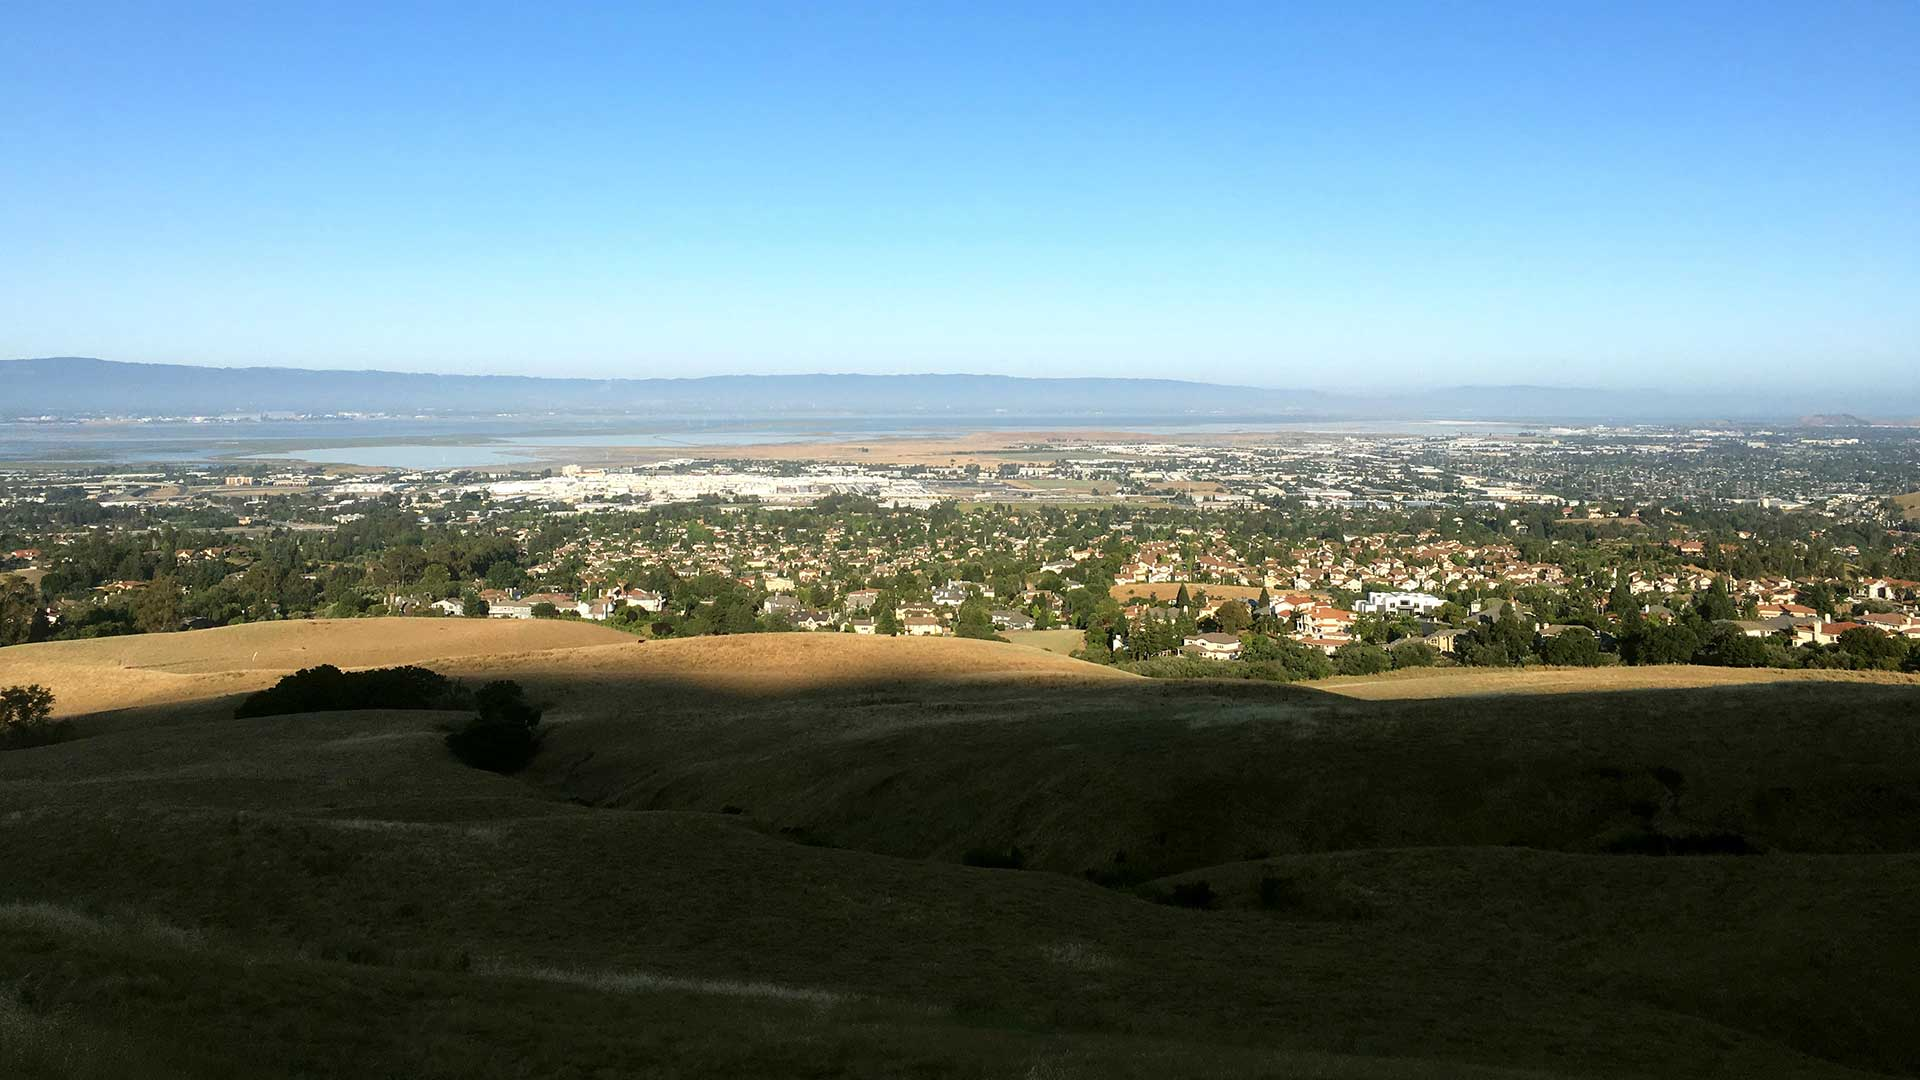 Photos from To Mission Peak 6